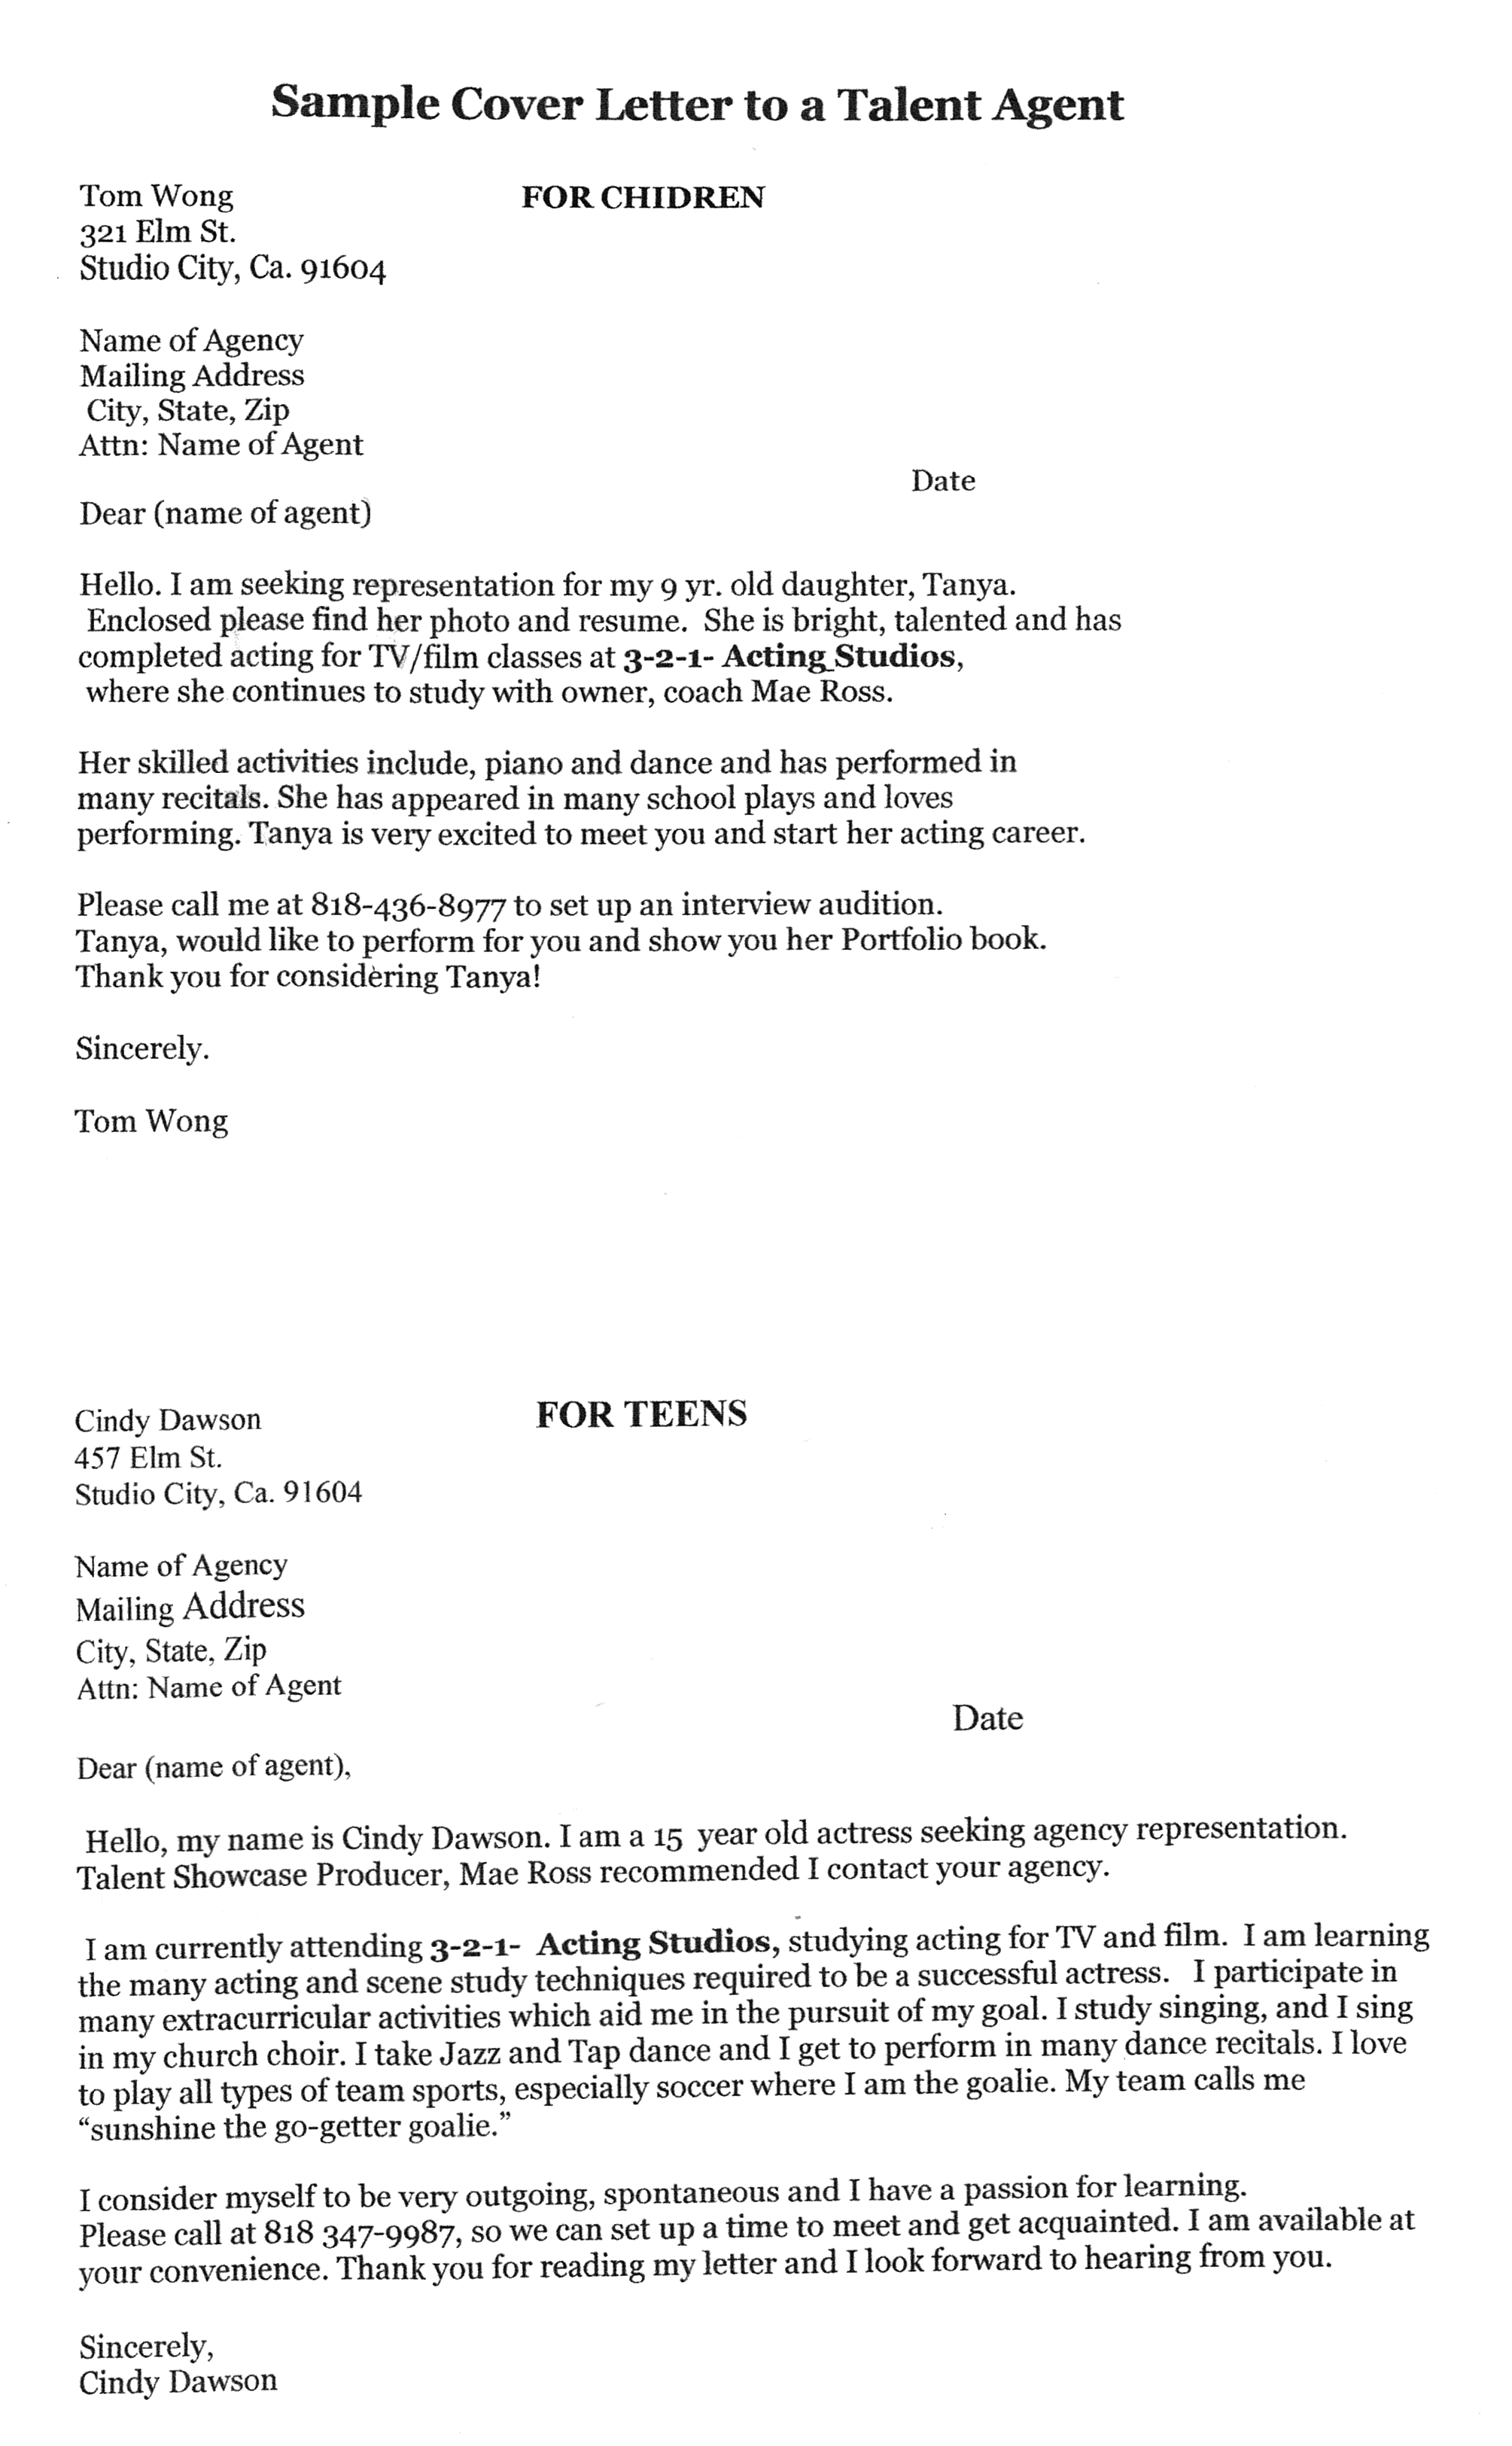 Sample Acting Cover Letter good sample cover letters to talent agents